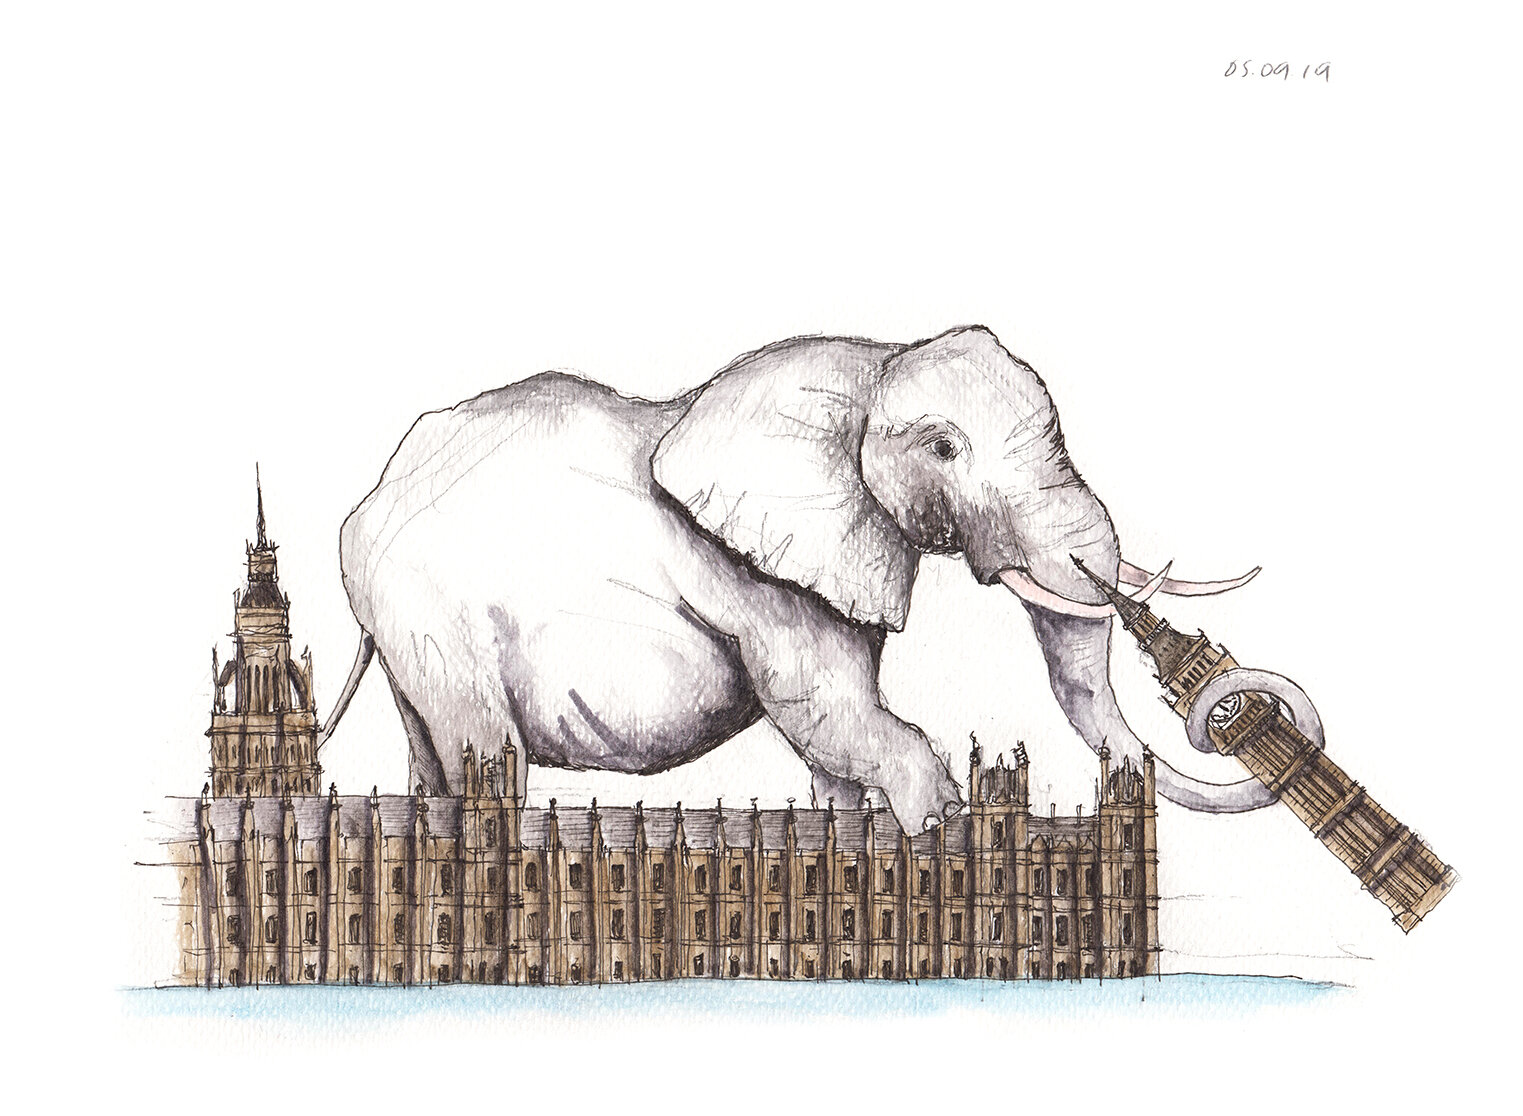 05.09.19 ... white elephant in westminster